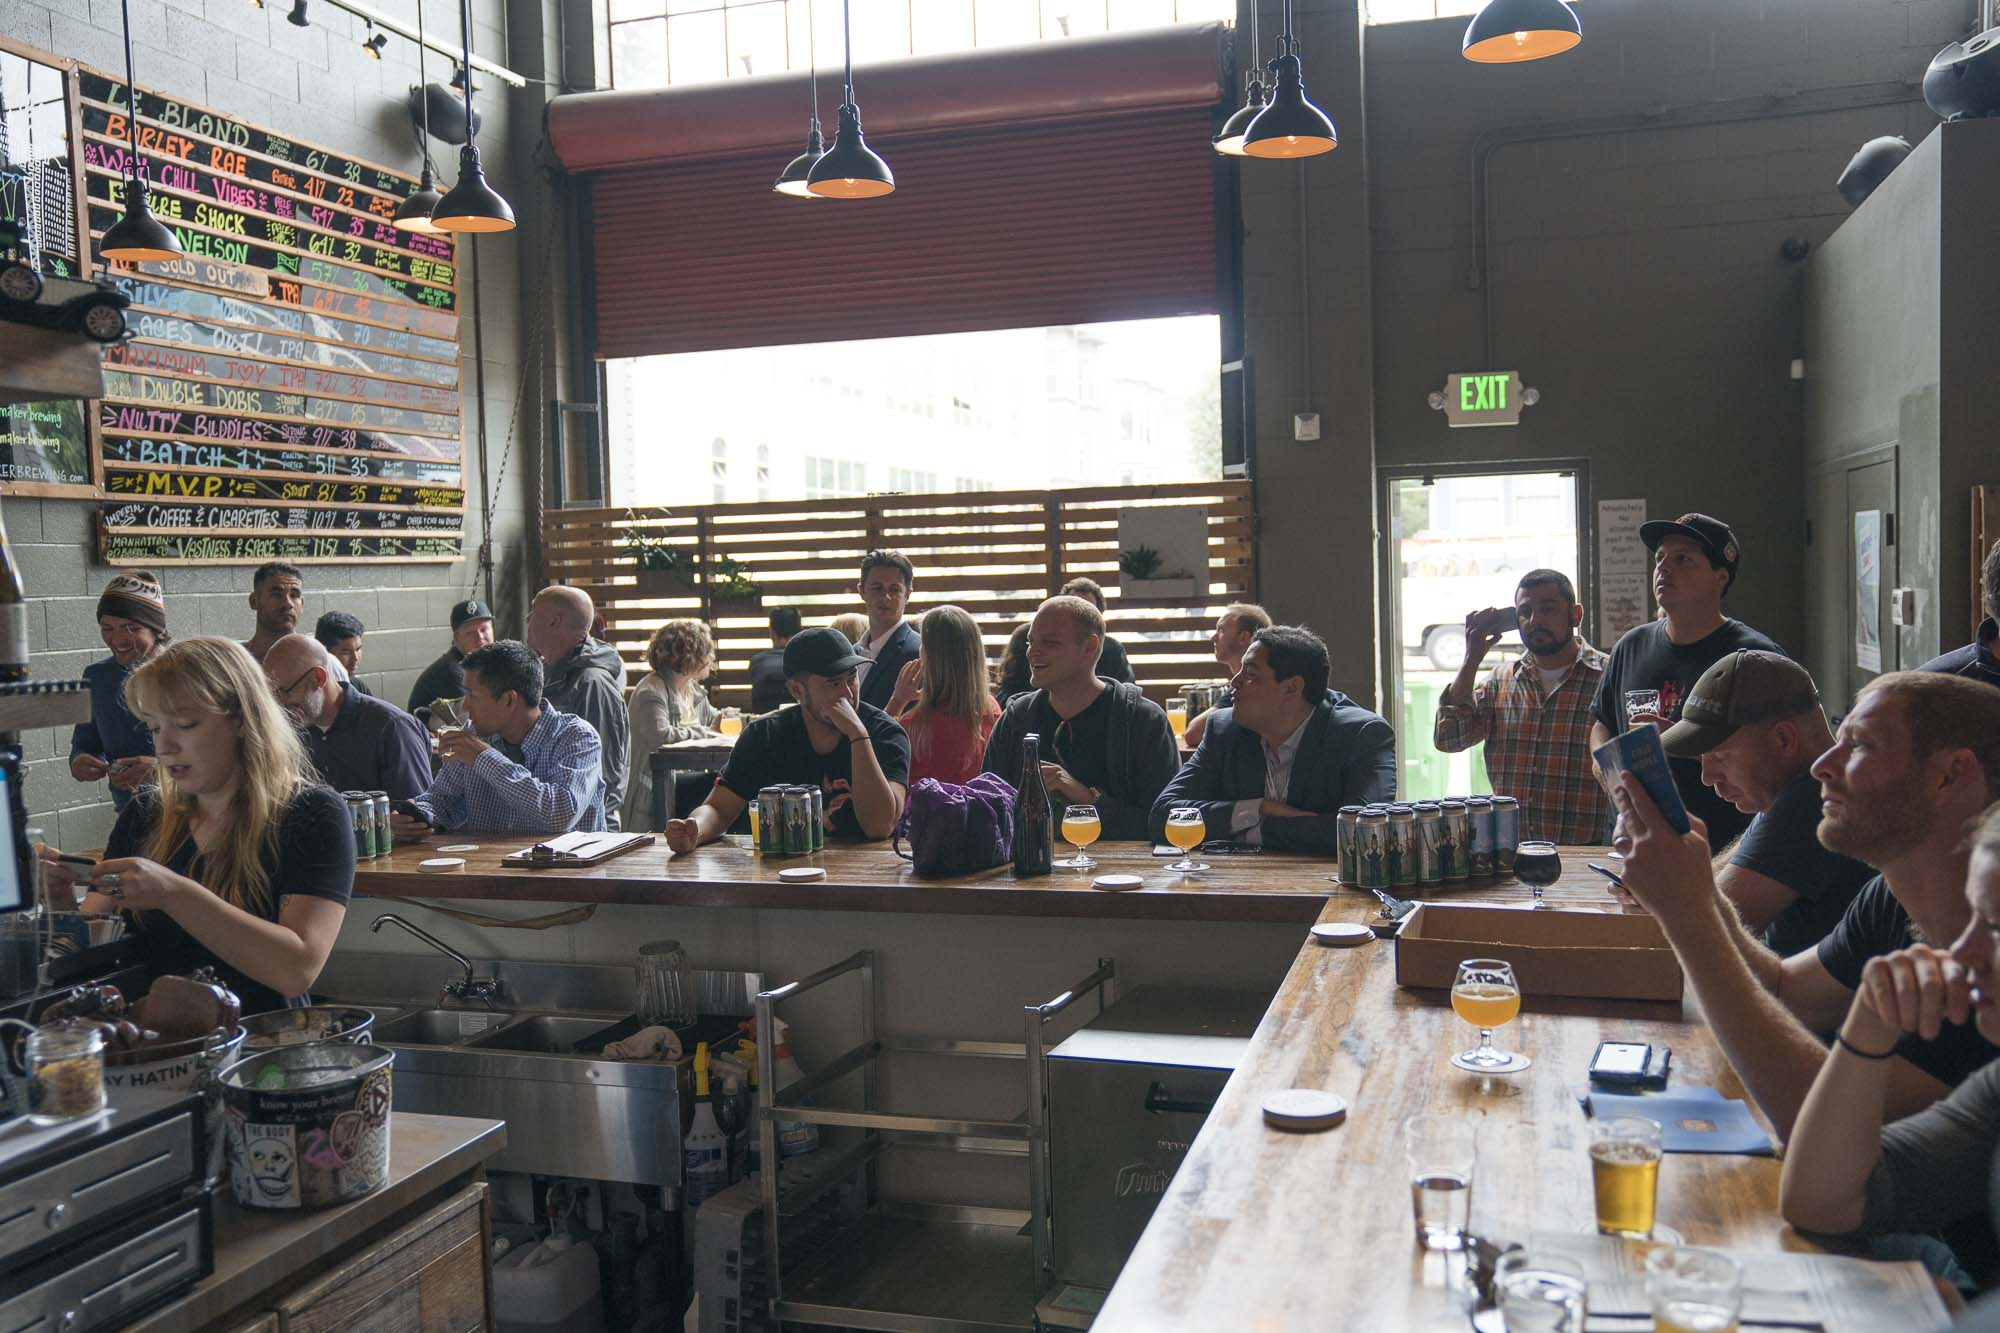 People sit around the bar drinking beer at Cellarmaker Brewery in San Francisco, California for Dirt Road Travels